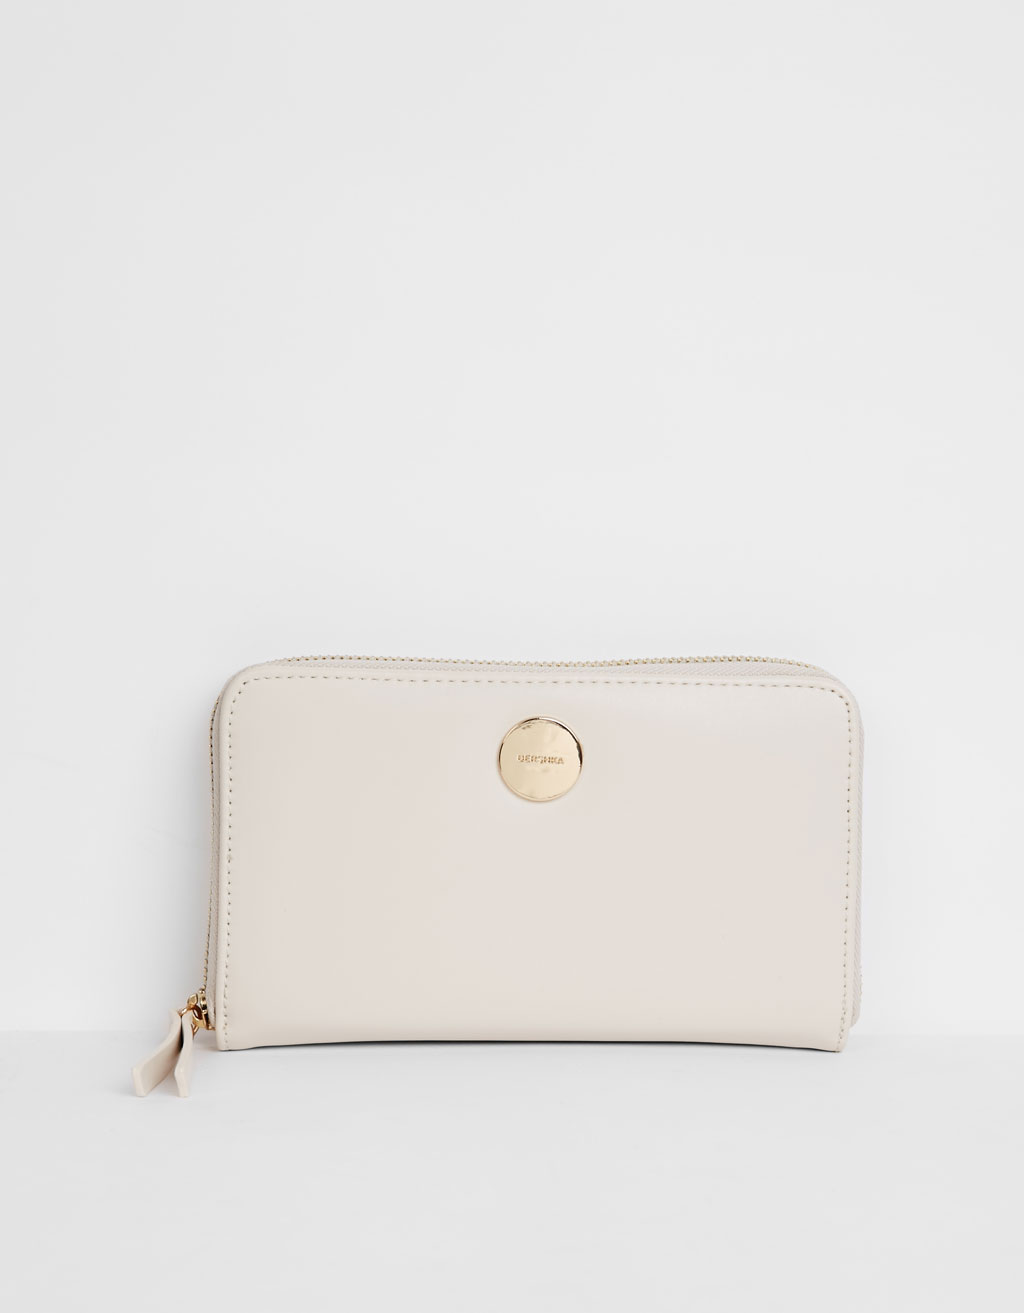 Purse with round stud